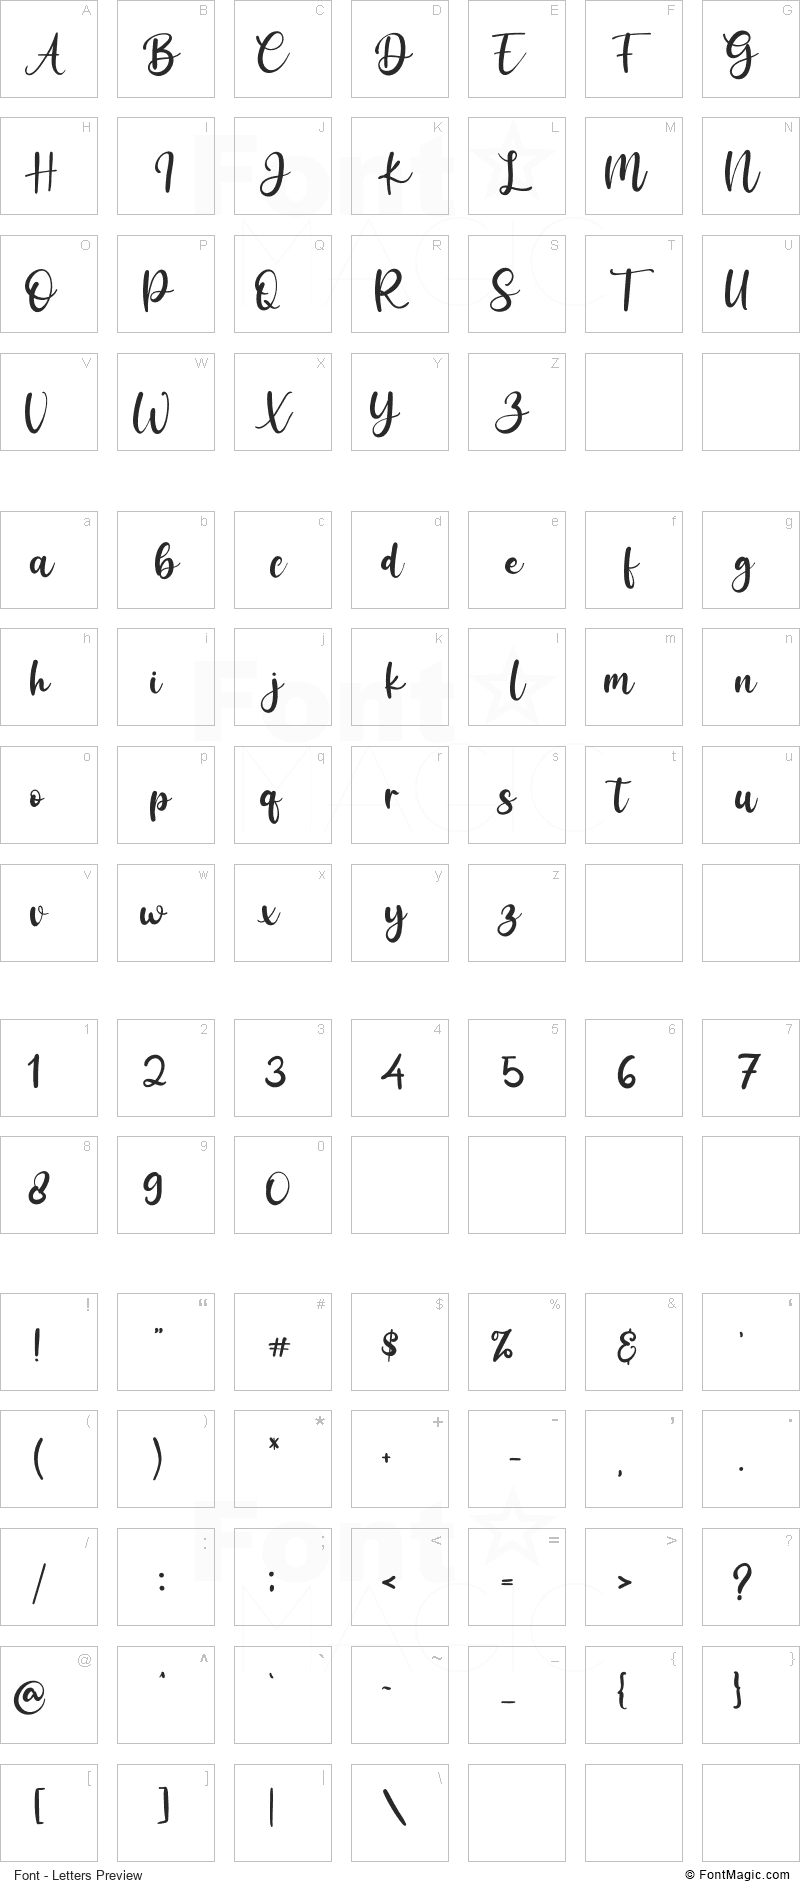 Antoinete Font - All Latters Preview Chart